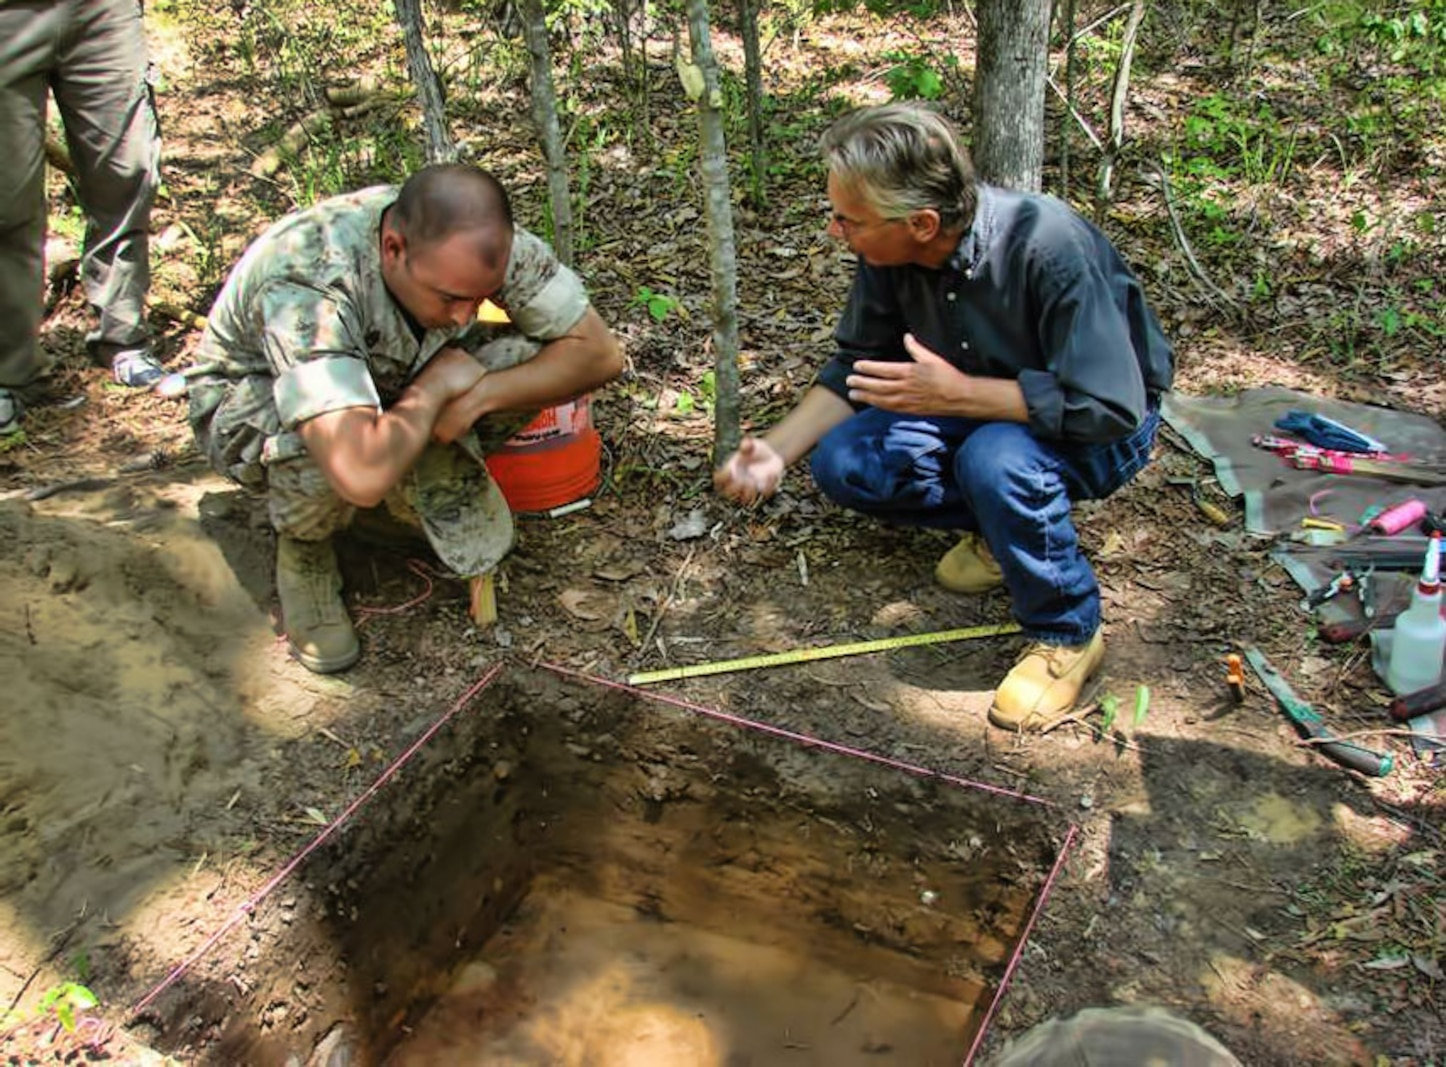 Base archaeologist discusses archaeological investigations in training areas aboard Marine Corps Base Camp Lejeune, N.C.